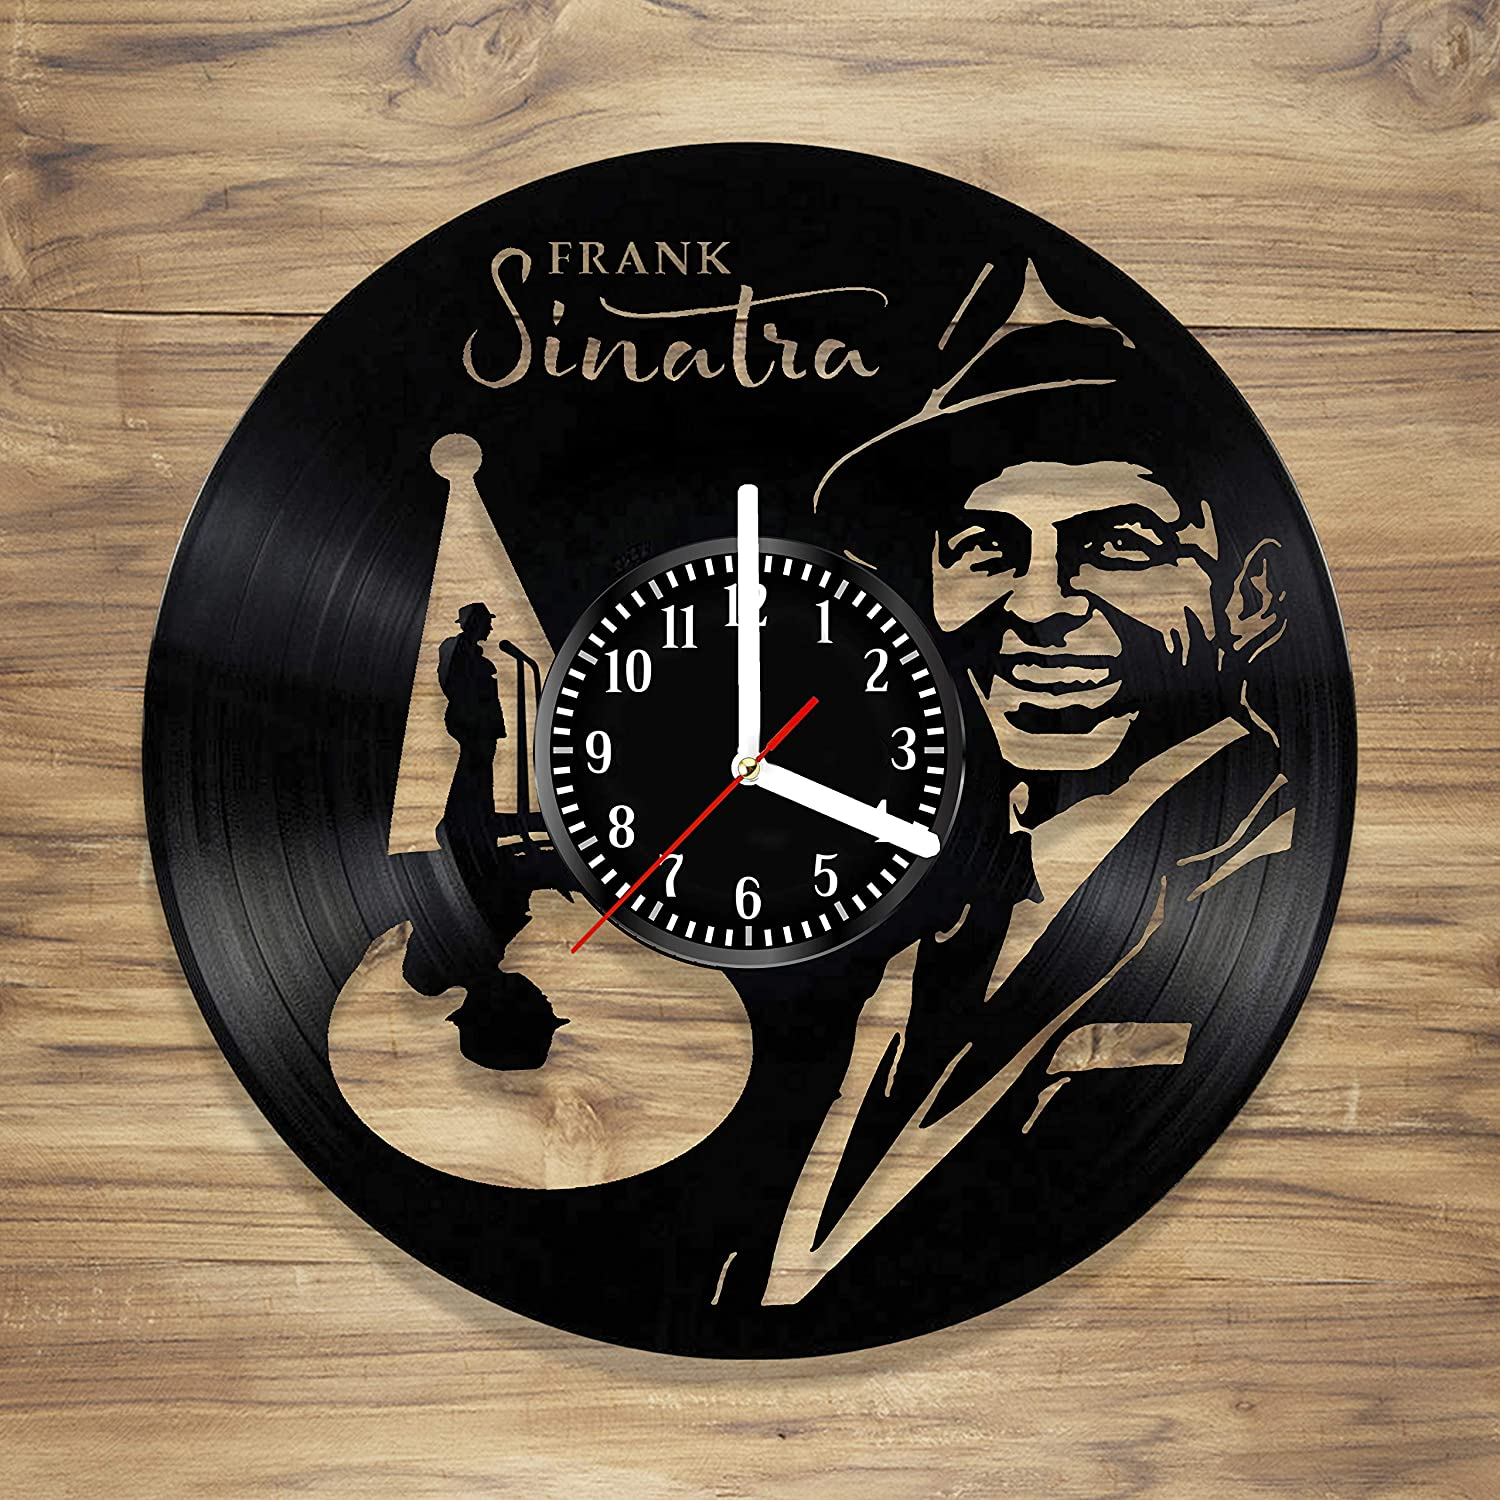 Frank Sinatra Vinyl Record Wall Clock Jazz Music Singer Artist Perfect Art Decorate Home Style Unique Gift idea for Him Her (12 inches)